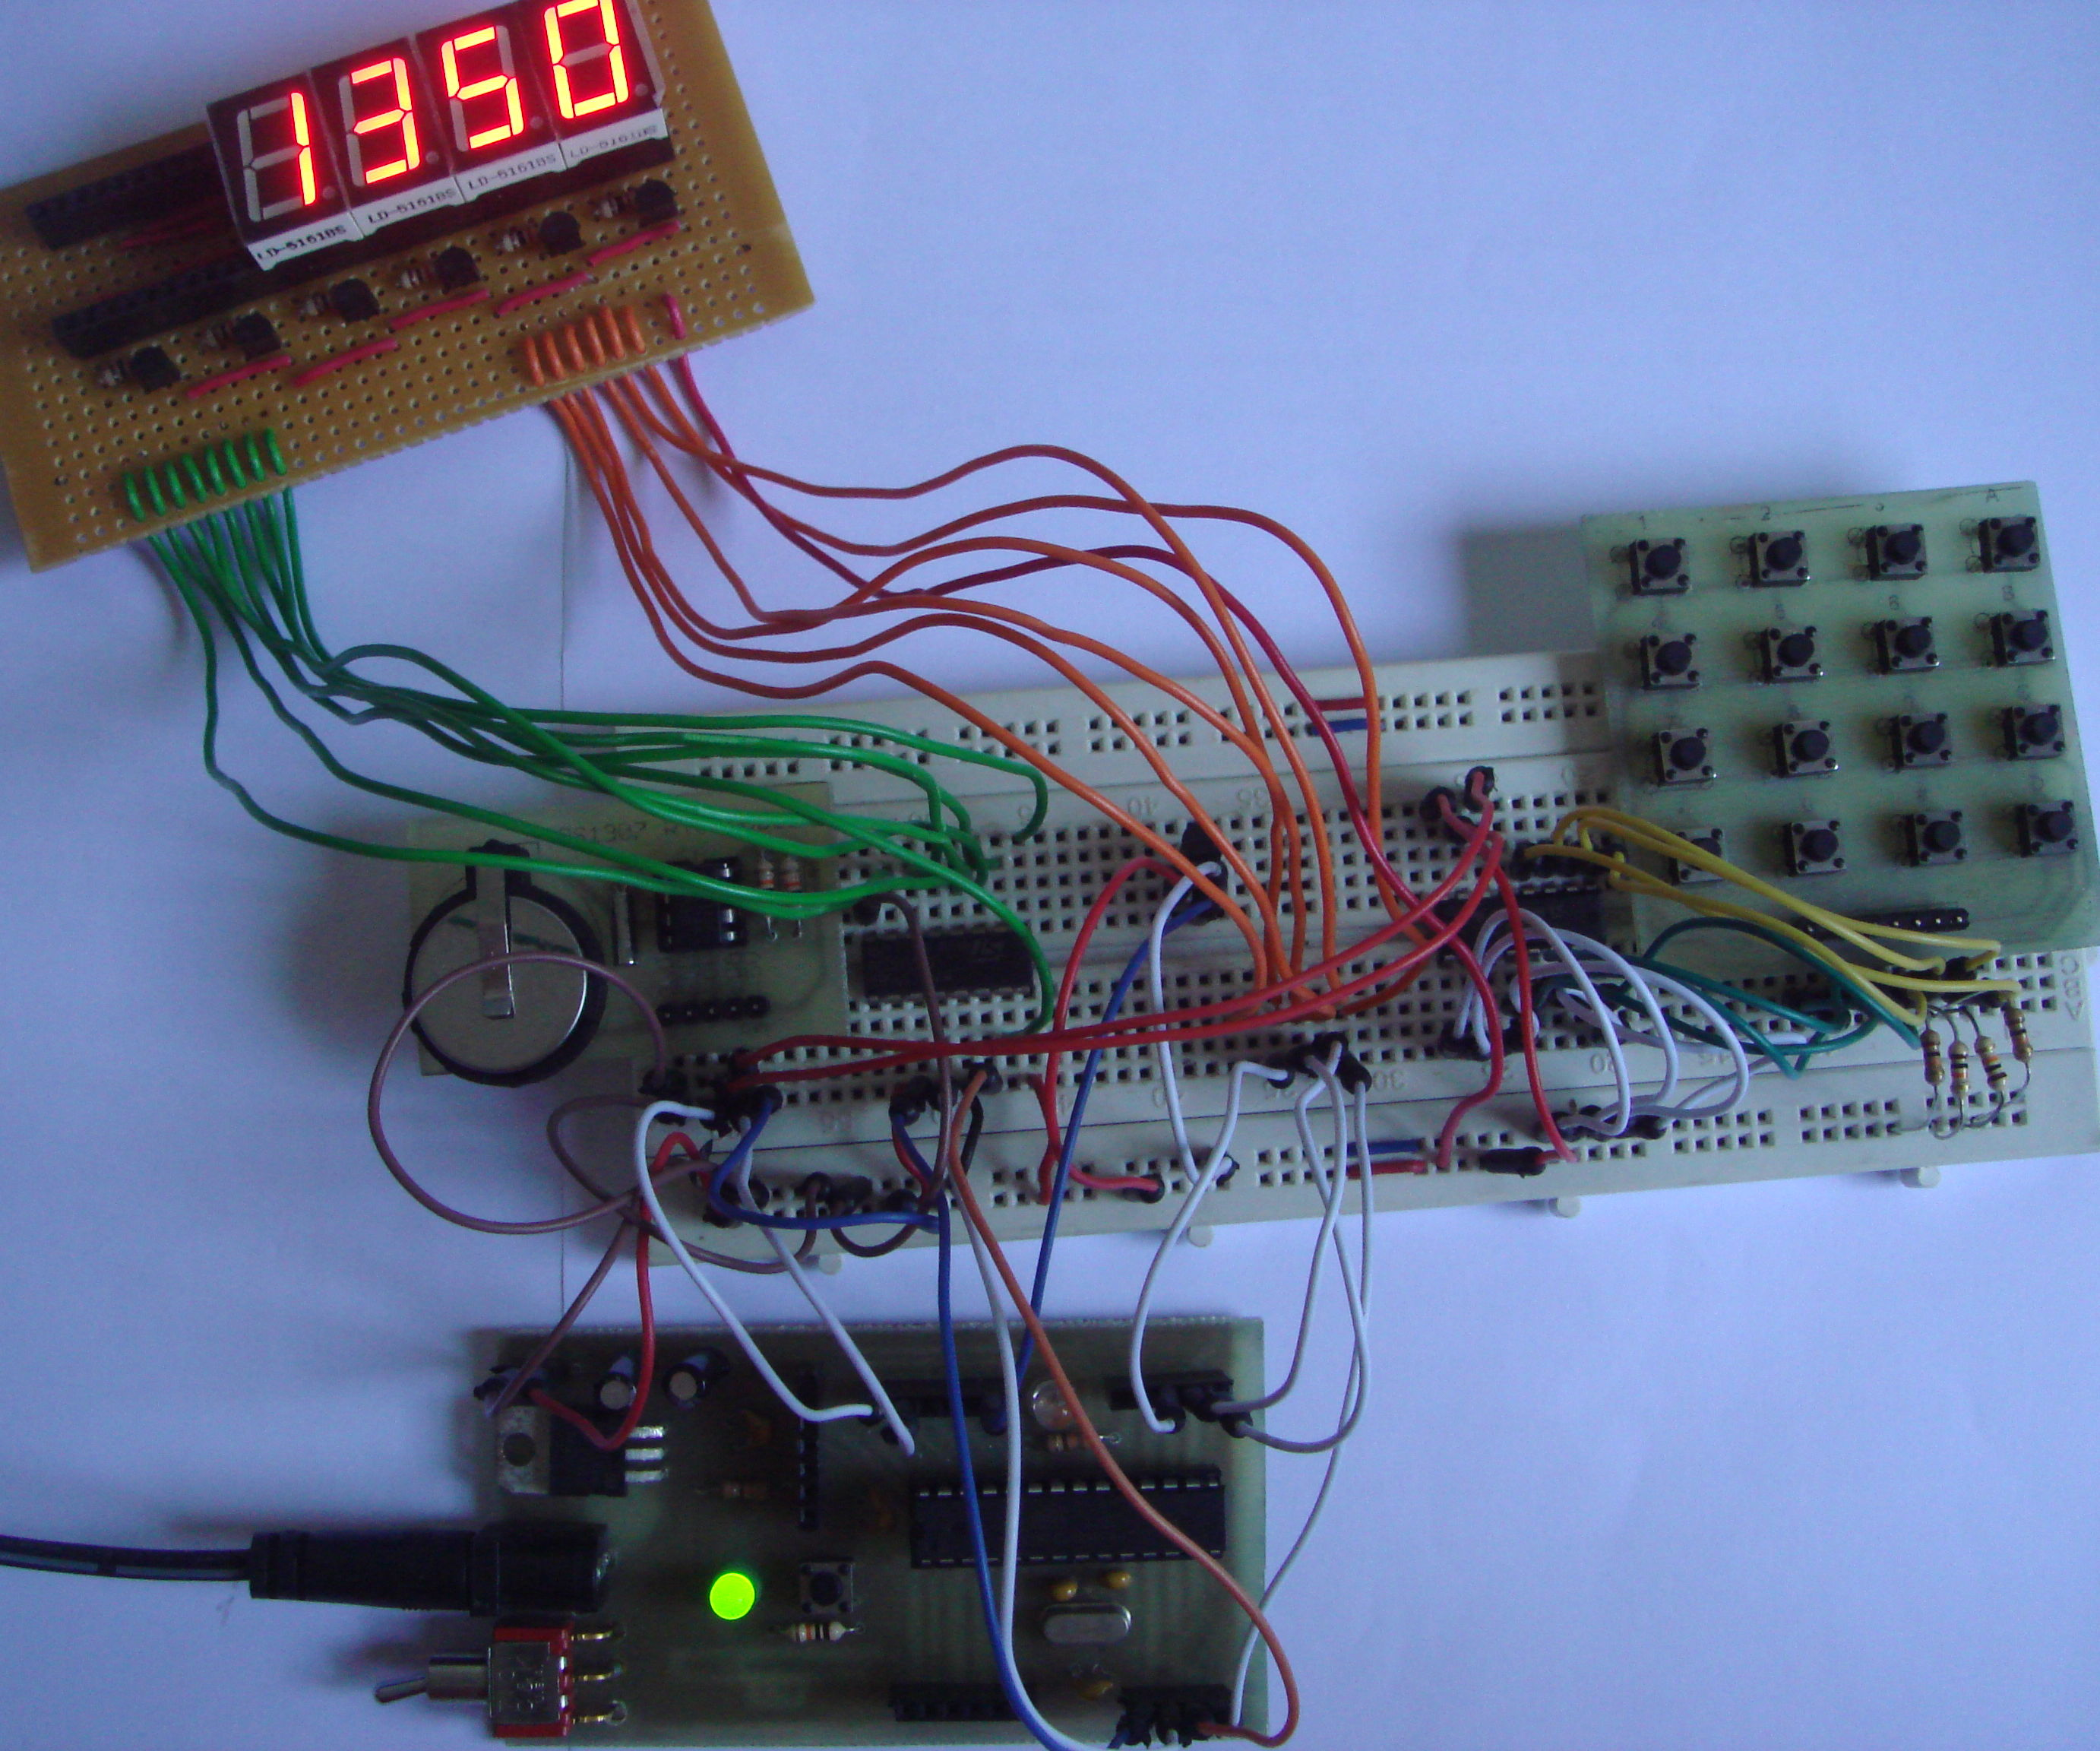 Digital Alarm Clock Using 7 Segment Display